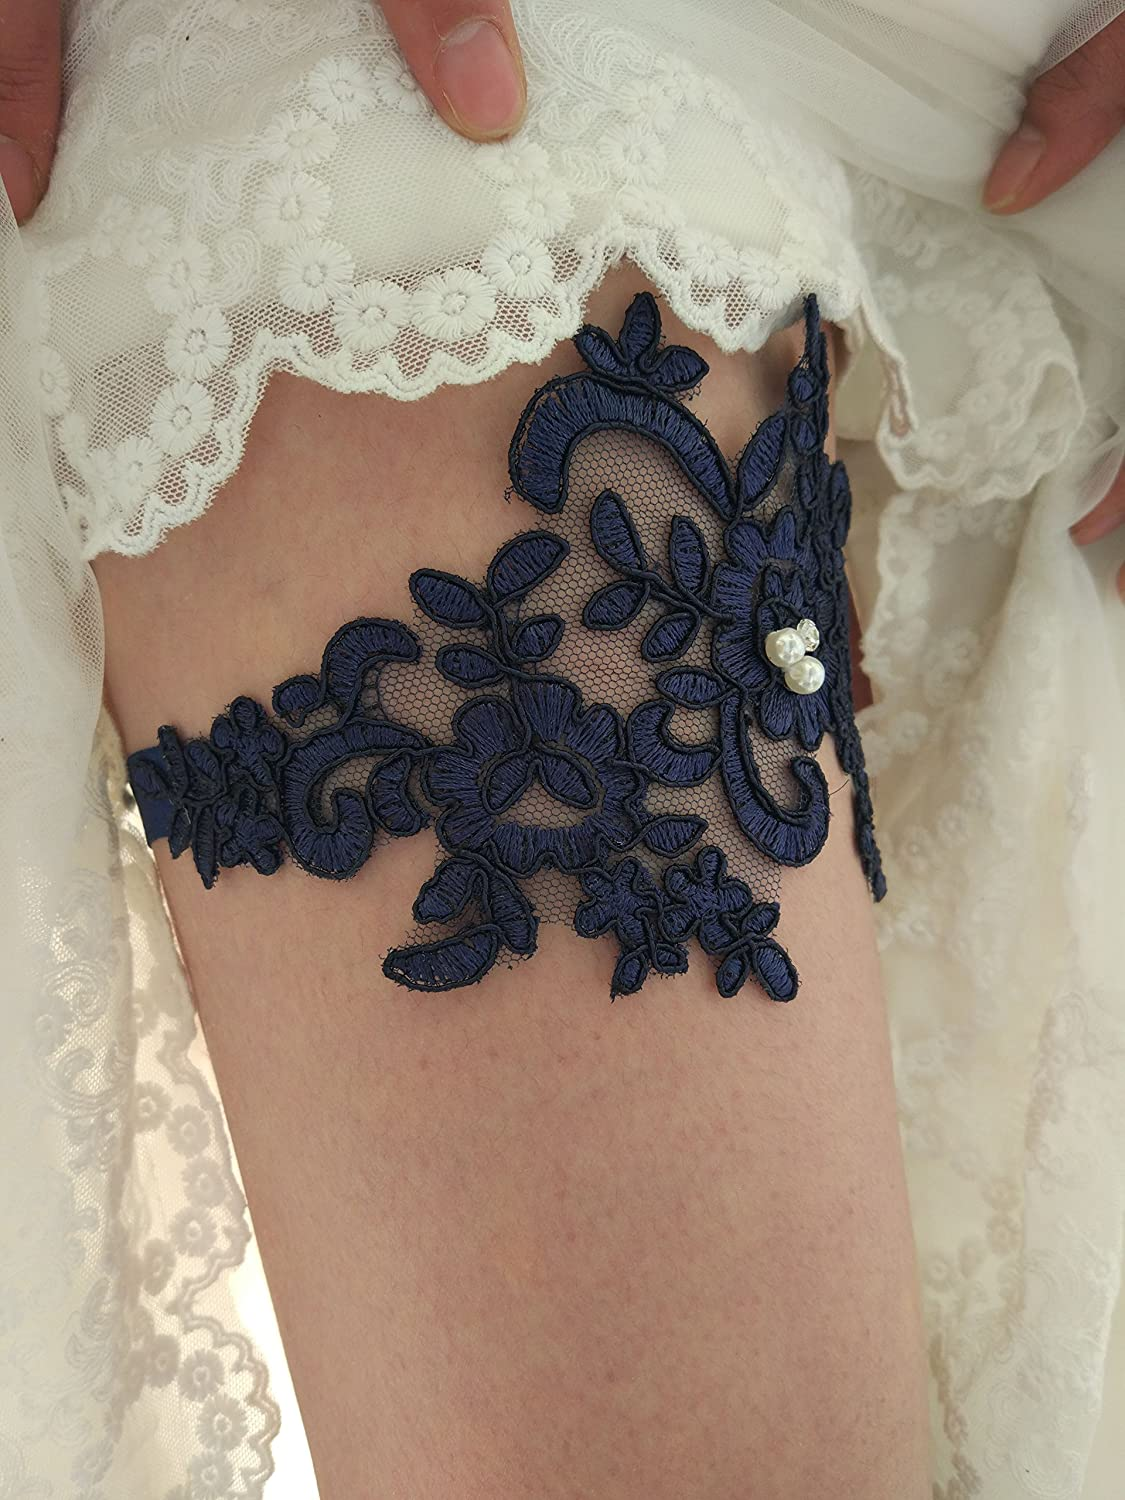 YhdDiy Lace Vintage Flower Beaded Wedding Garter for Bride Leaf Style S12